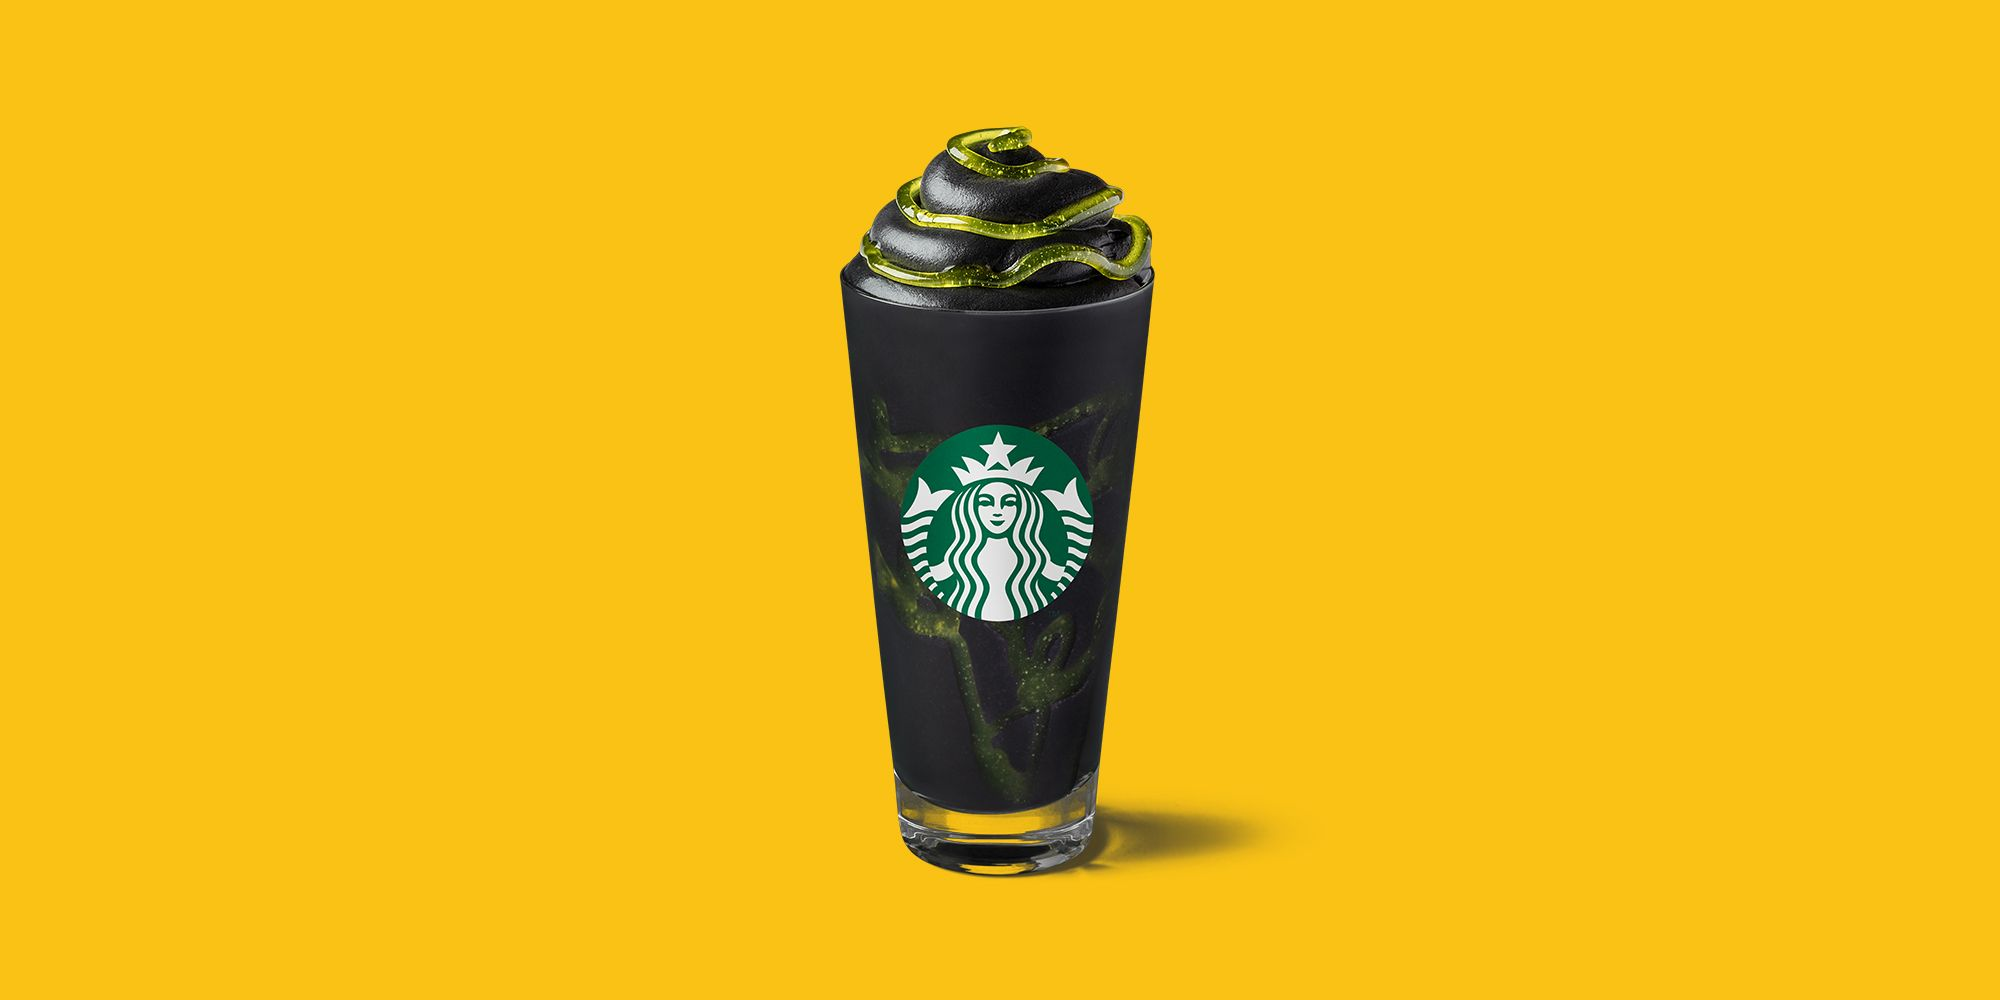 Starbucks Has Launched A Brand New Phantom Frappuccino For Halloween